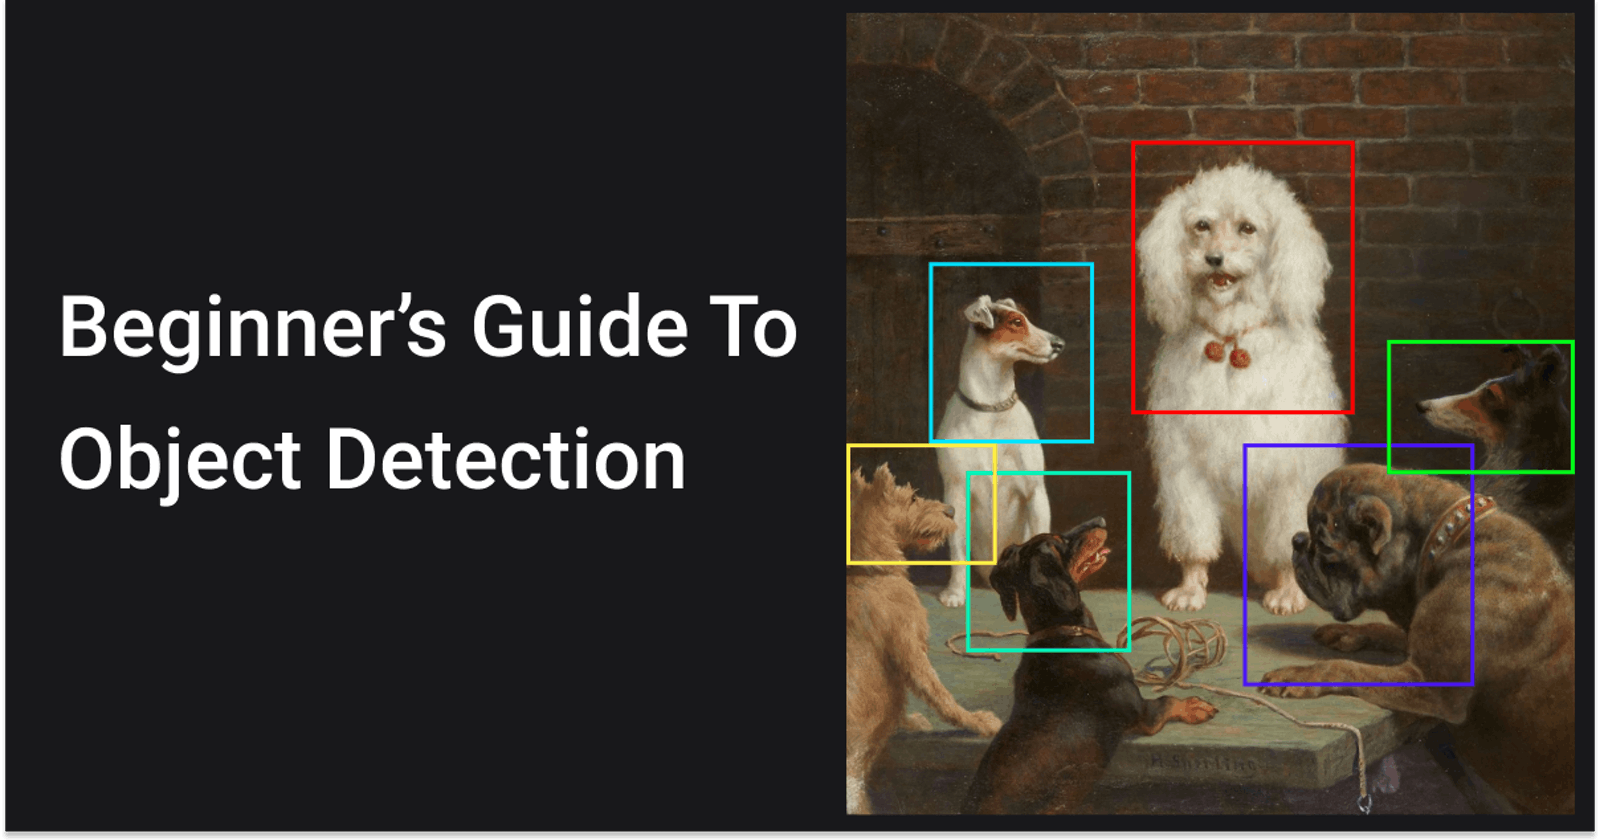 Beginner's Guide To Object Detection